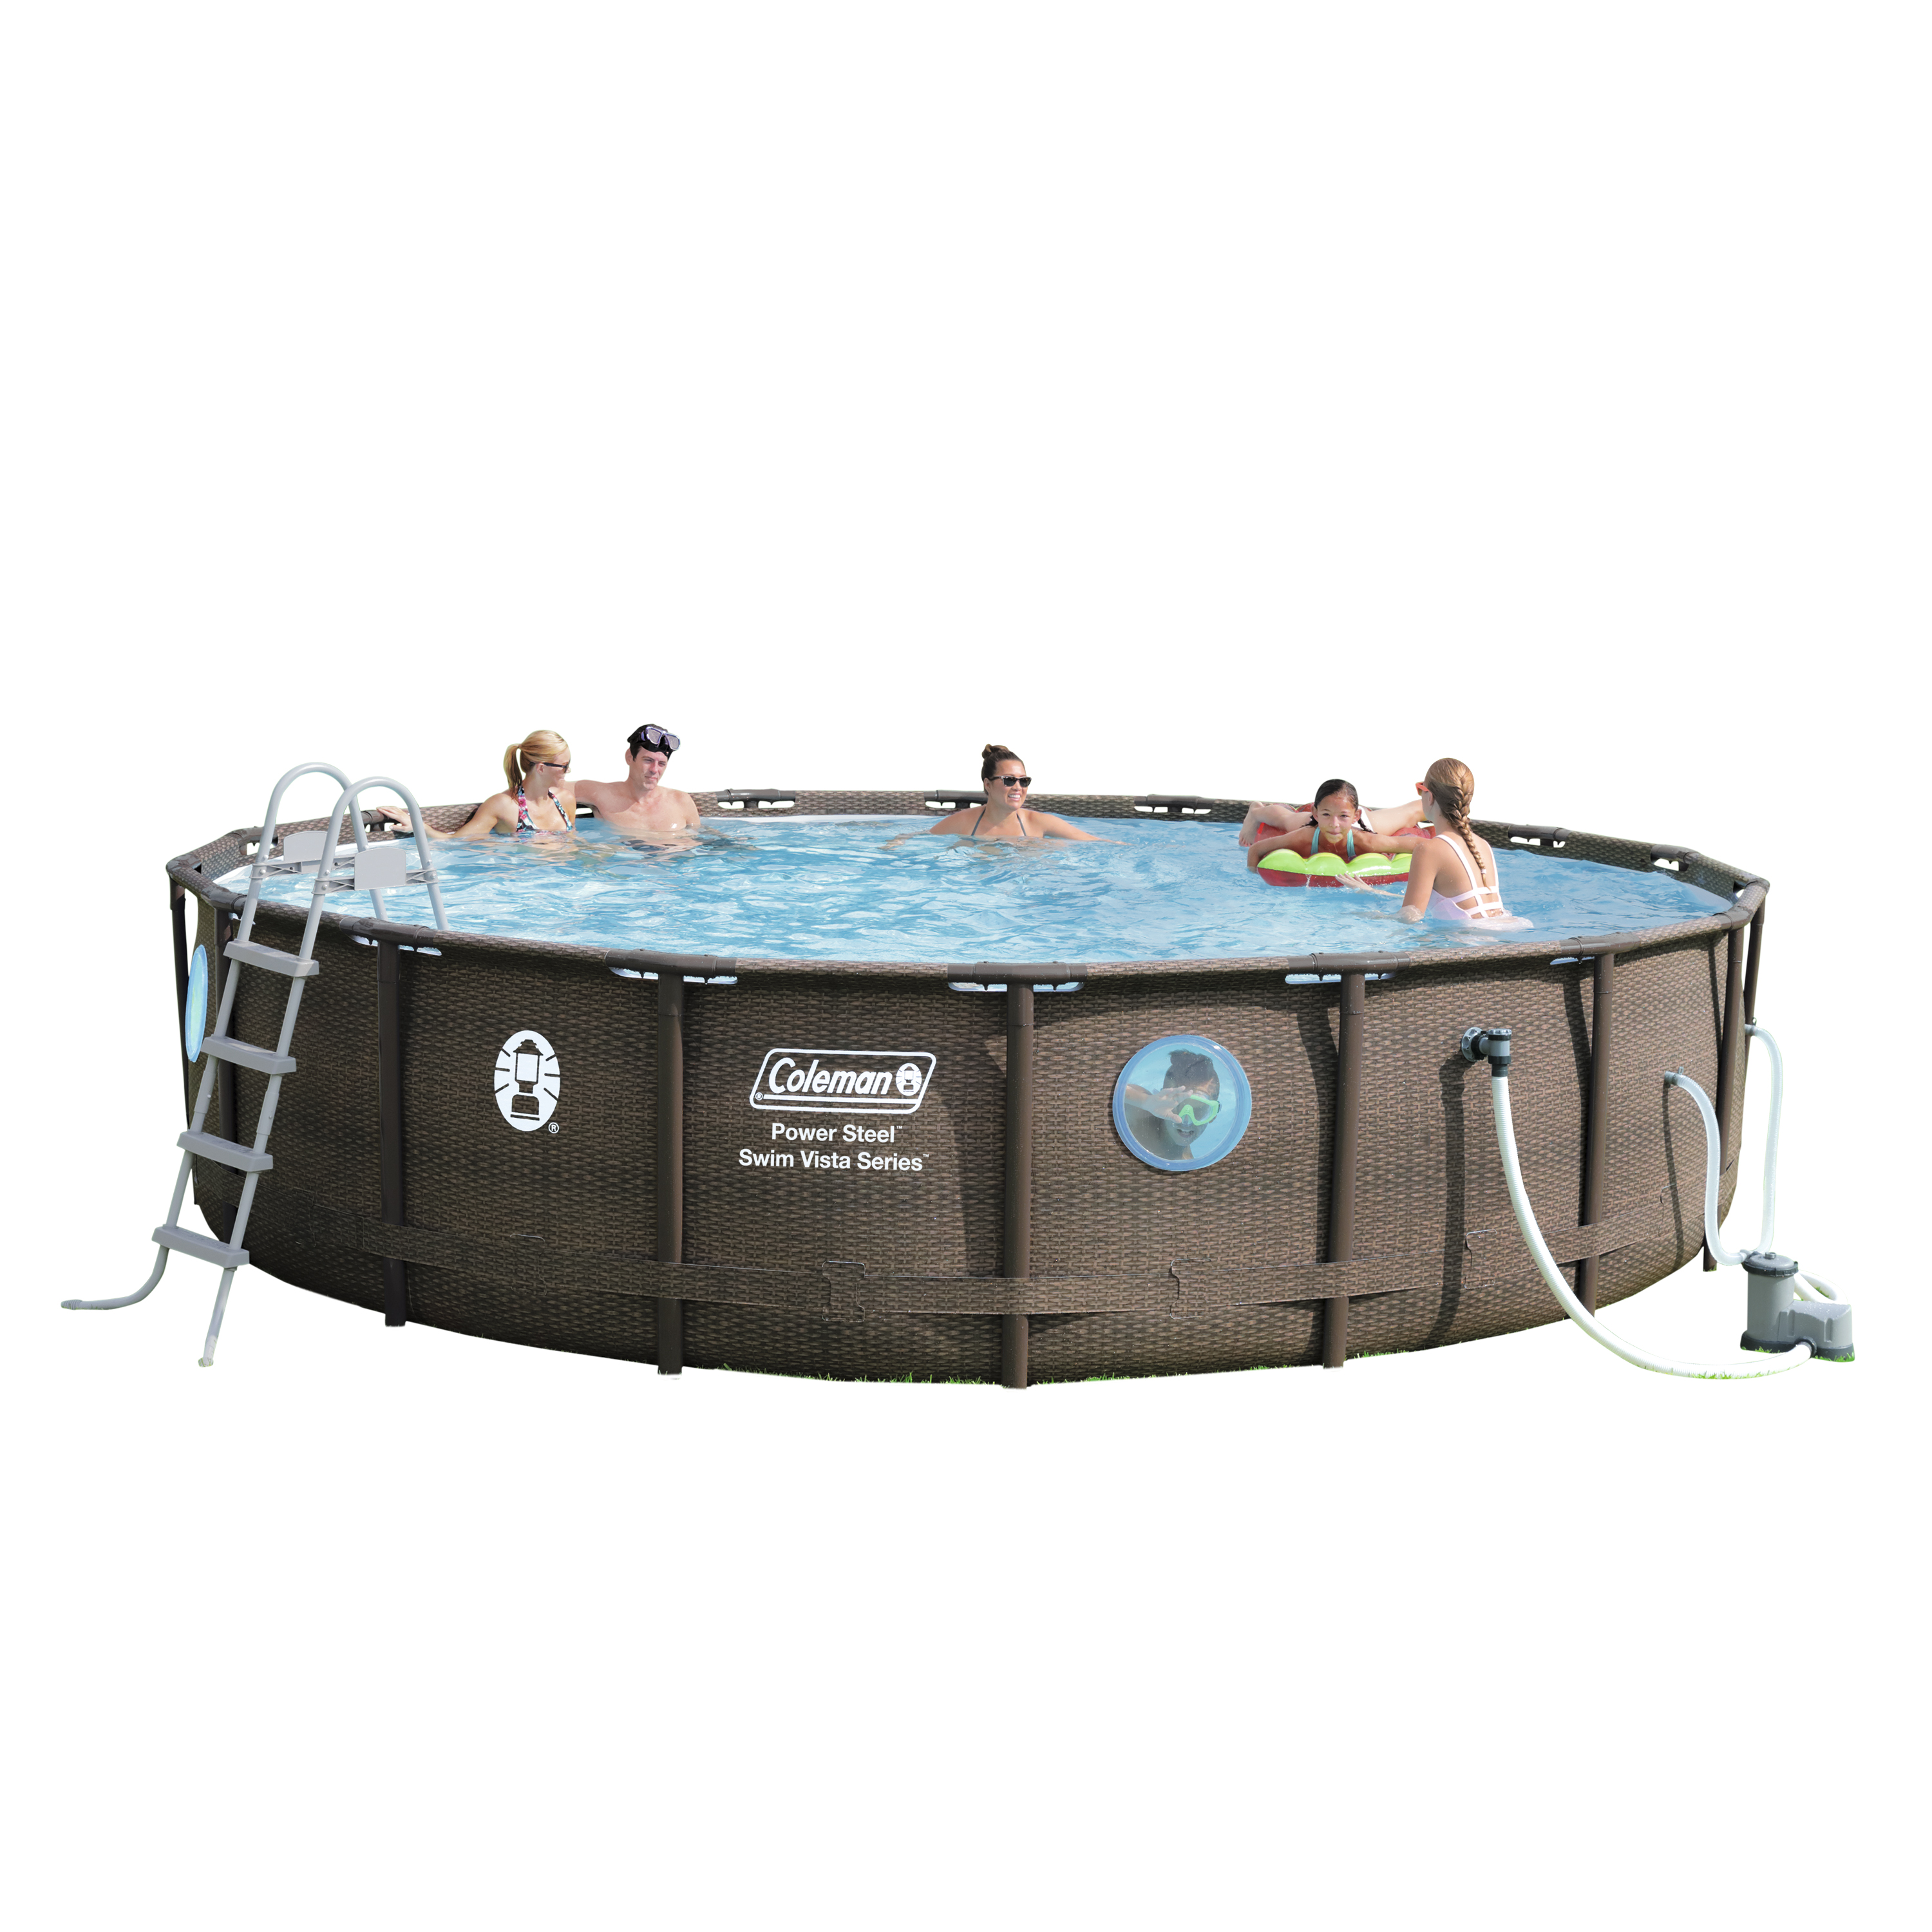 """Coleman Power Steel Swim Vista Series II 18' x 48"""" Frame Swimming Pool Set with Pump, Ladder and Cover"""